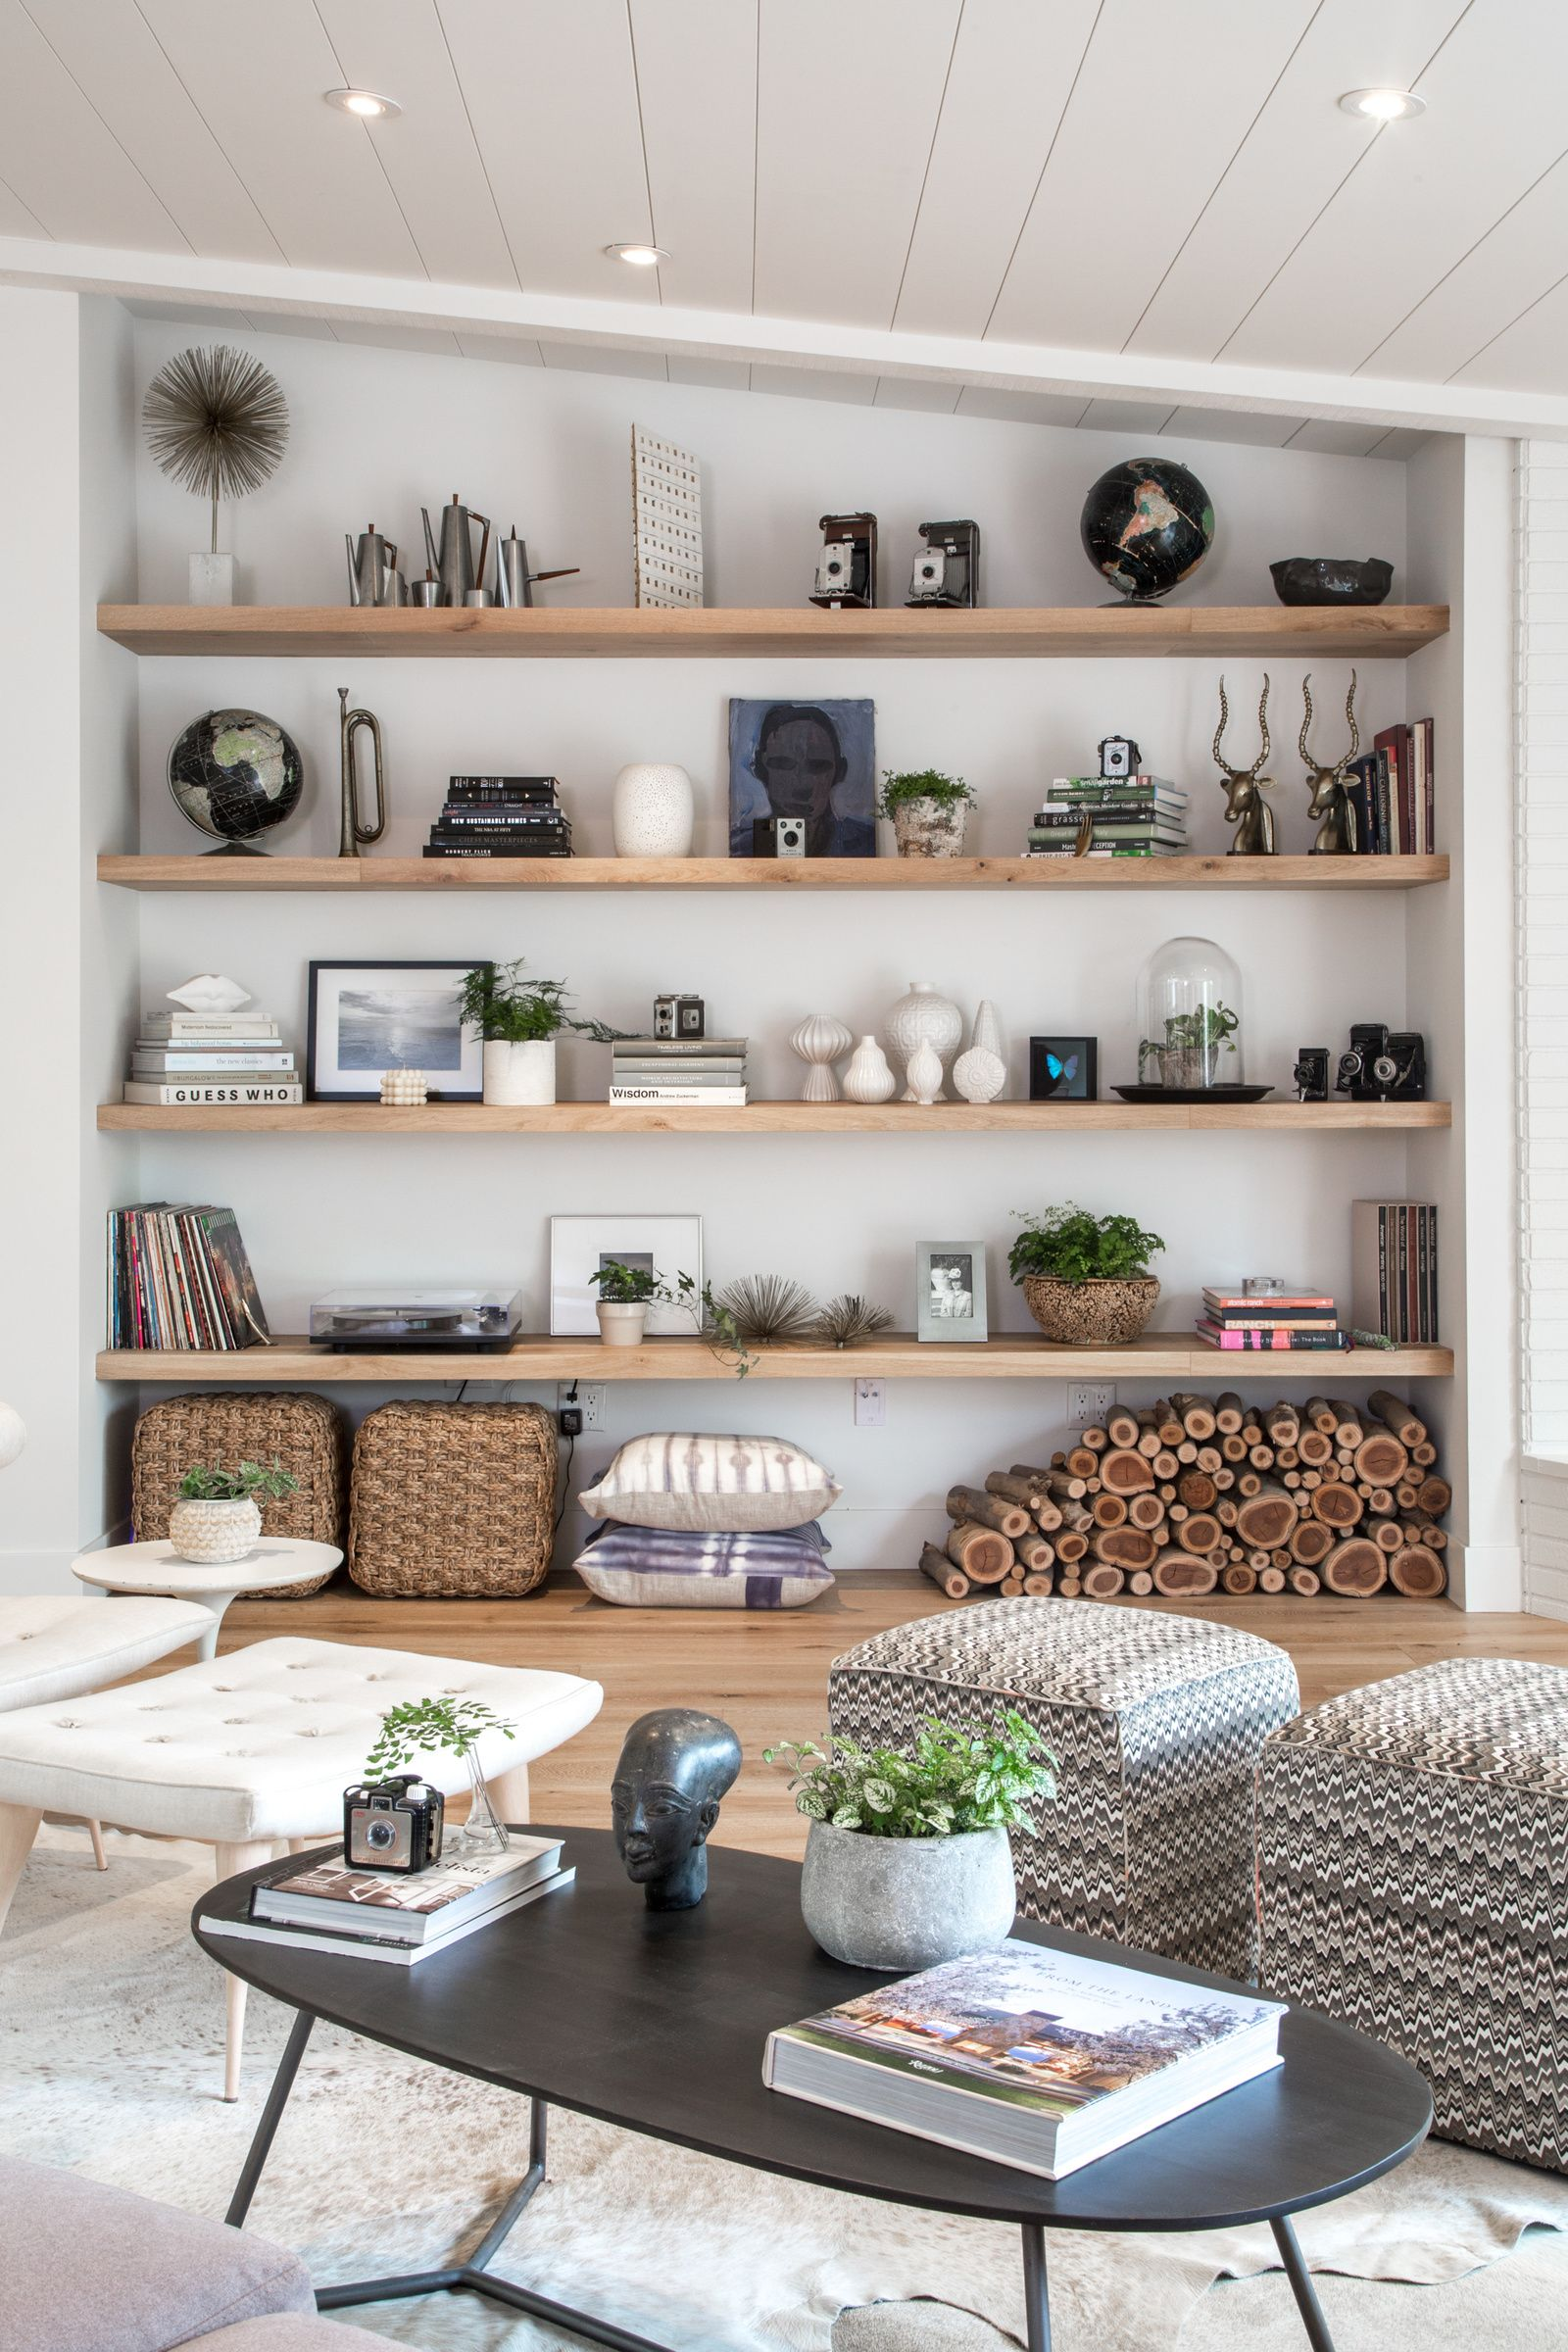 bookcase cabinets living room wall paint color ideas for open shelf styling bethany nauert s portfolio residential